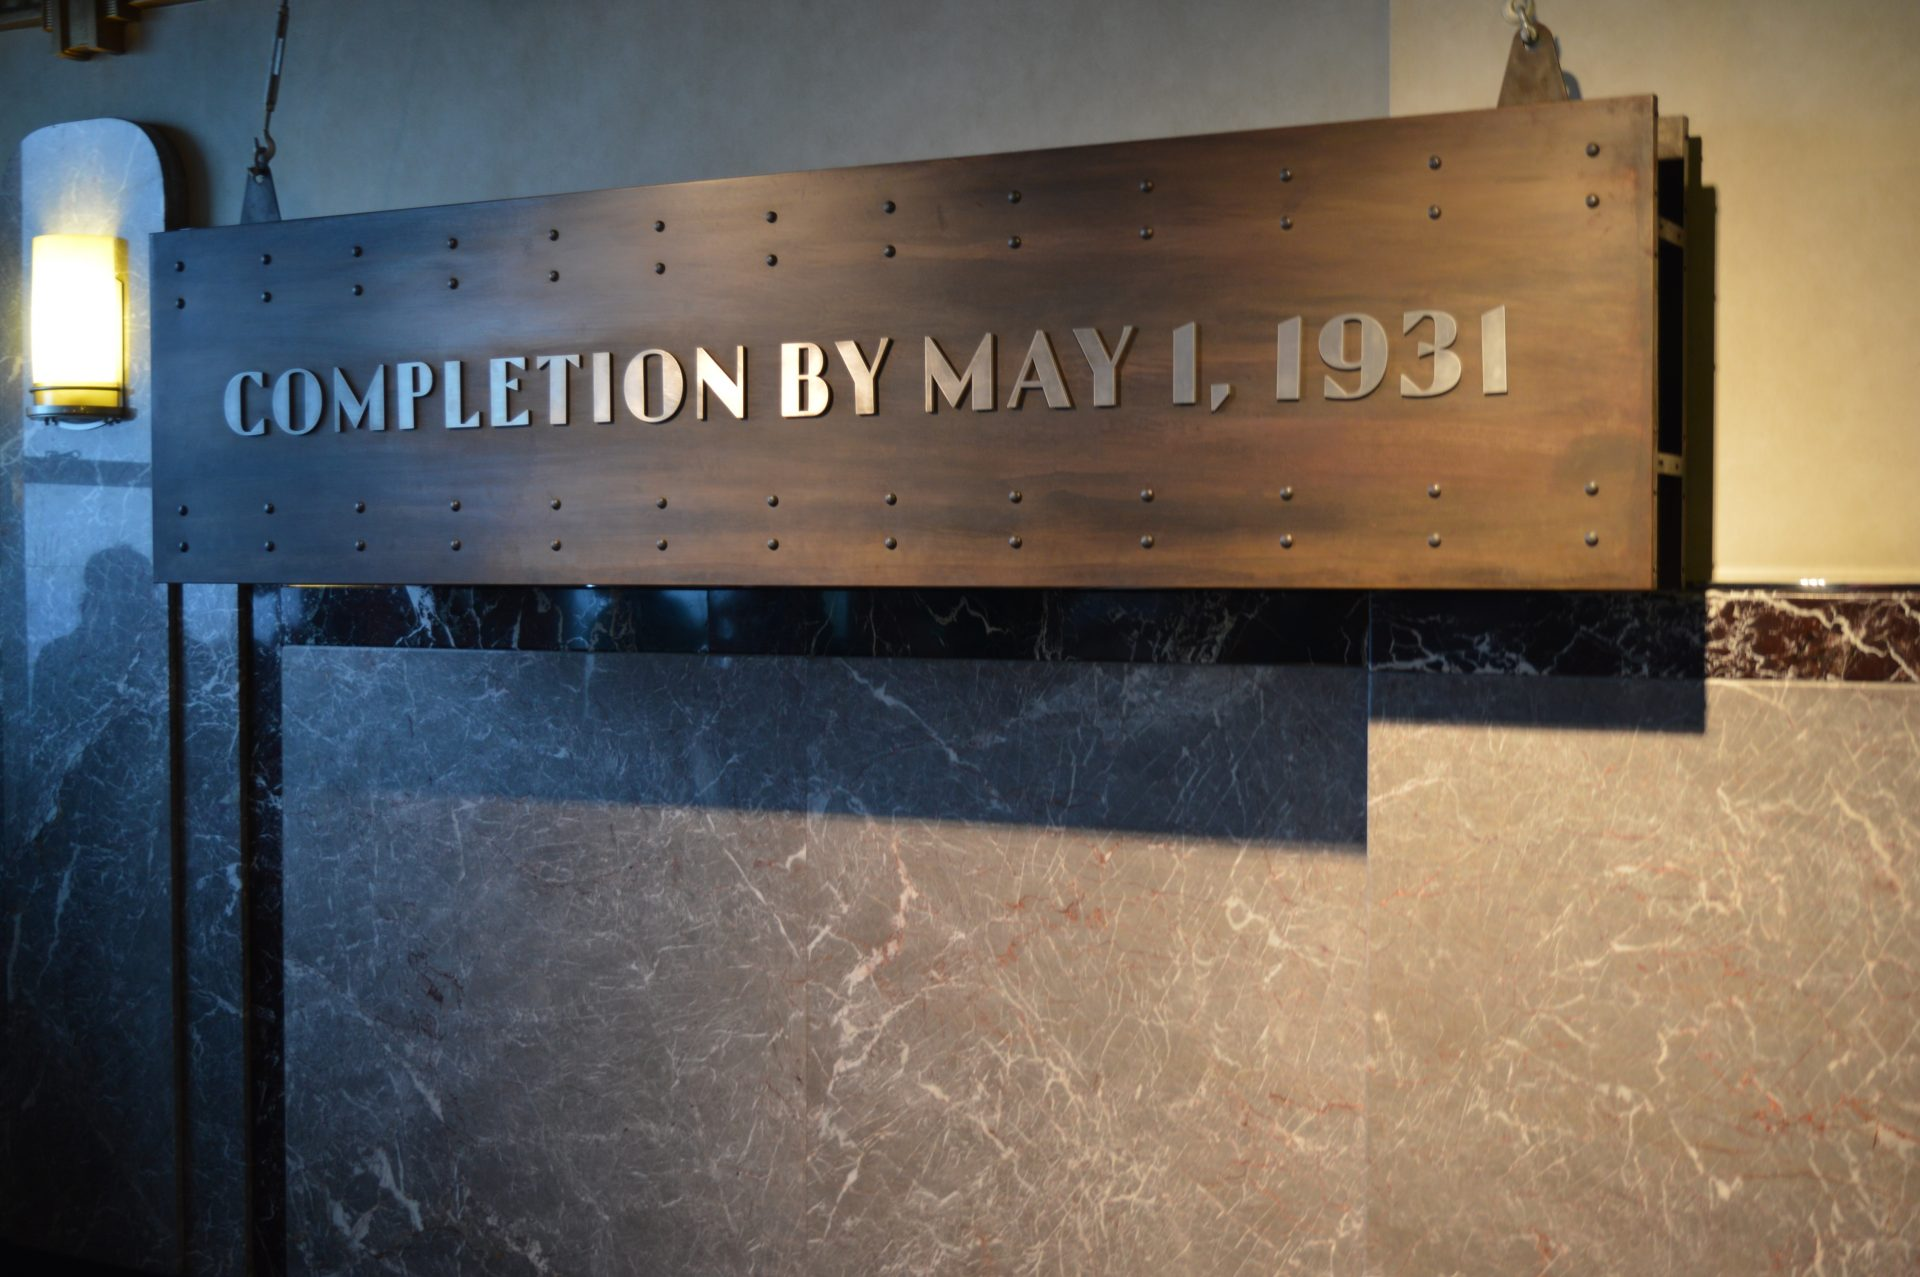 Completion by May 1, 1931